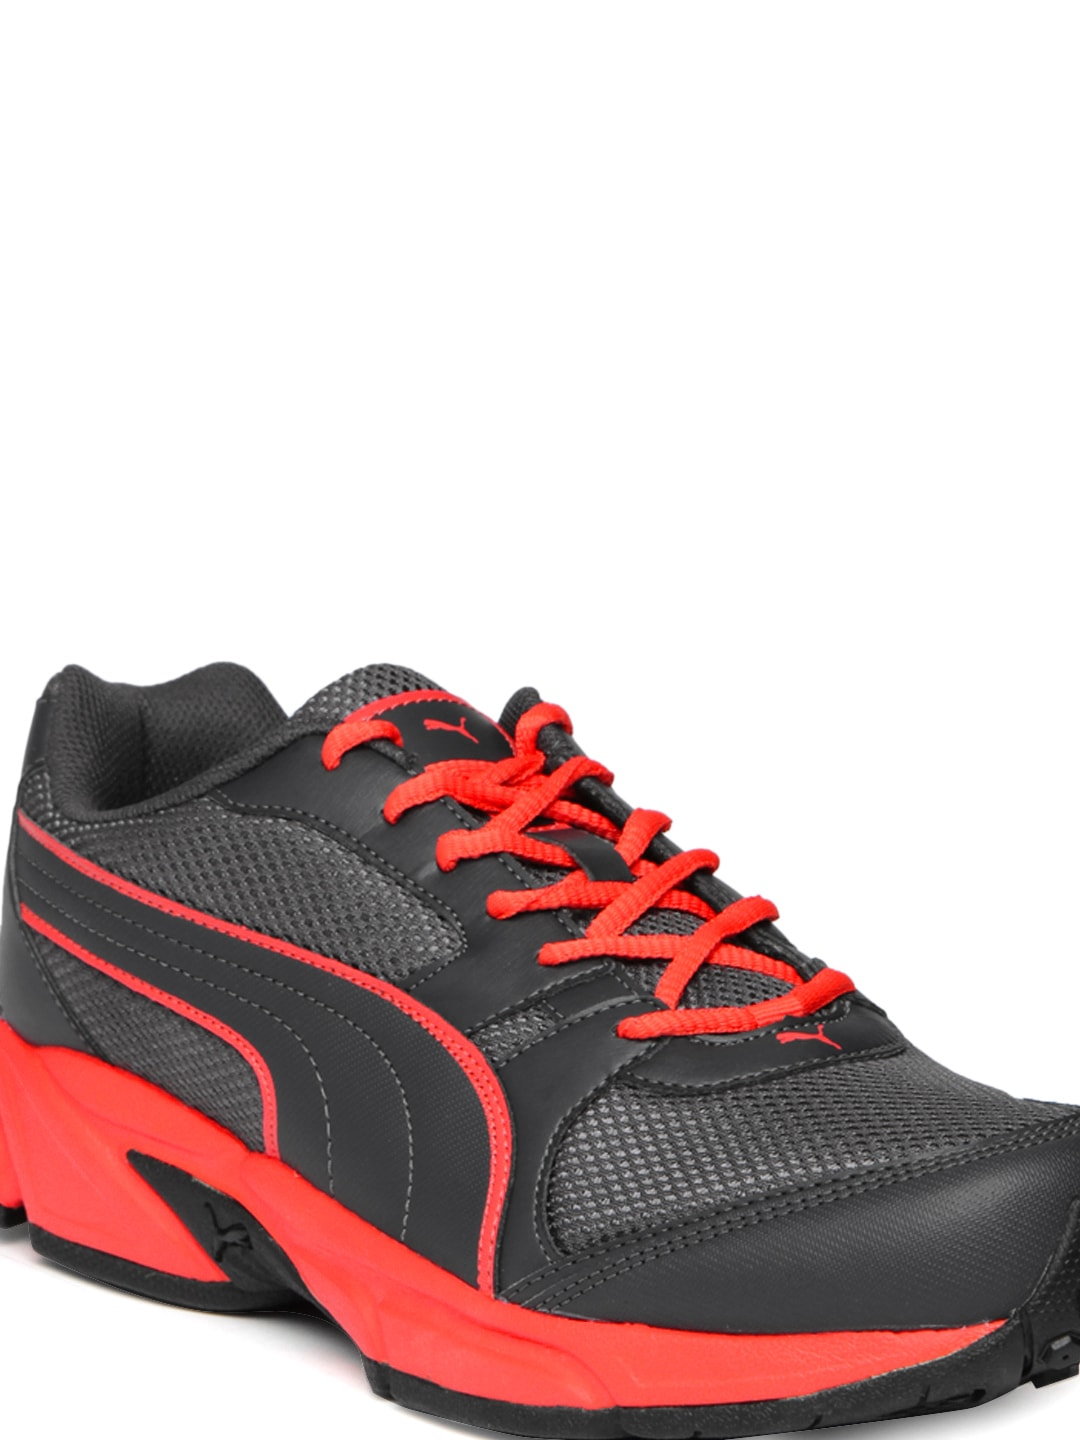 3f259f4cf91 puma football shoes different color cheap   OFF69% Discounted